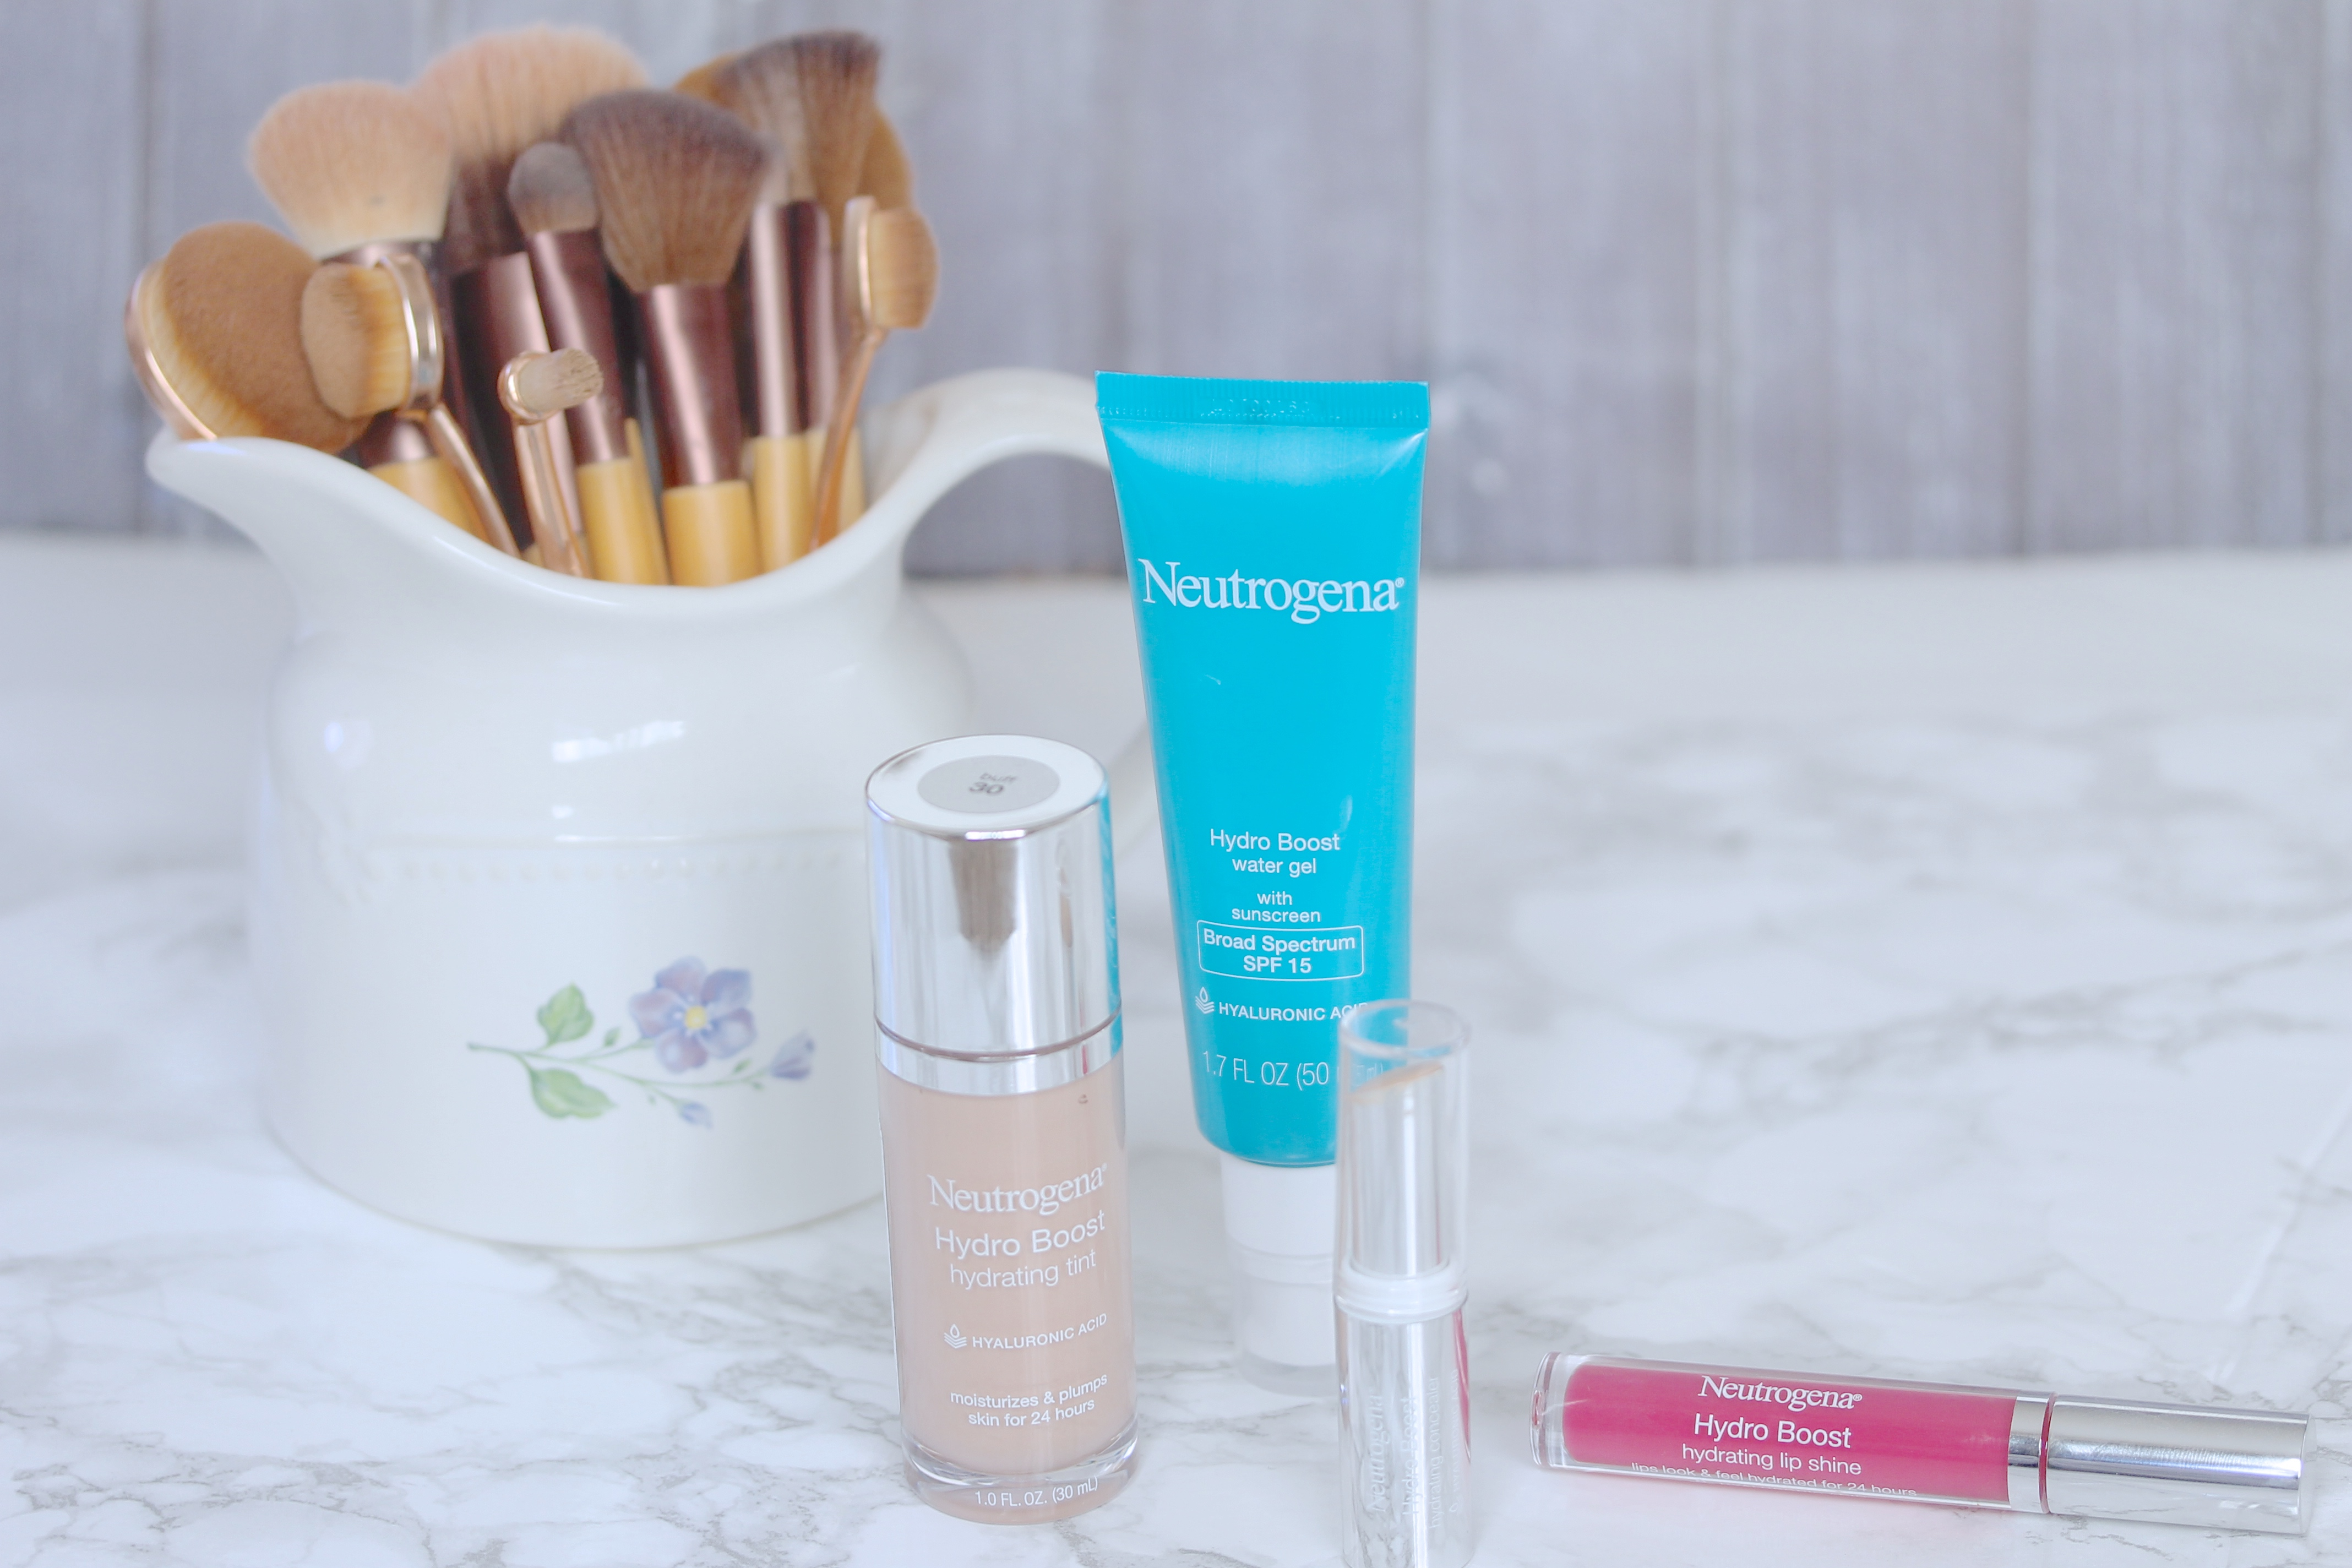 Keeping My Skin Hydrated with Neutrogena's New Hydro Boost Line - MyThirtySpot